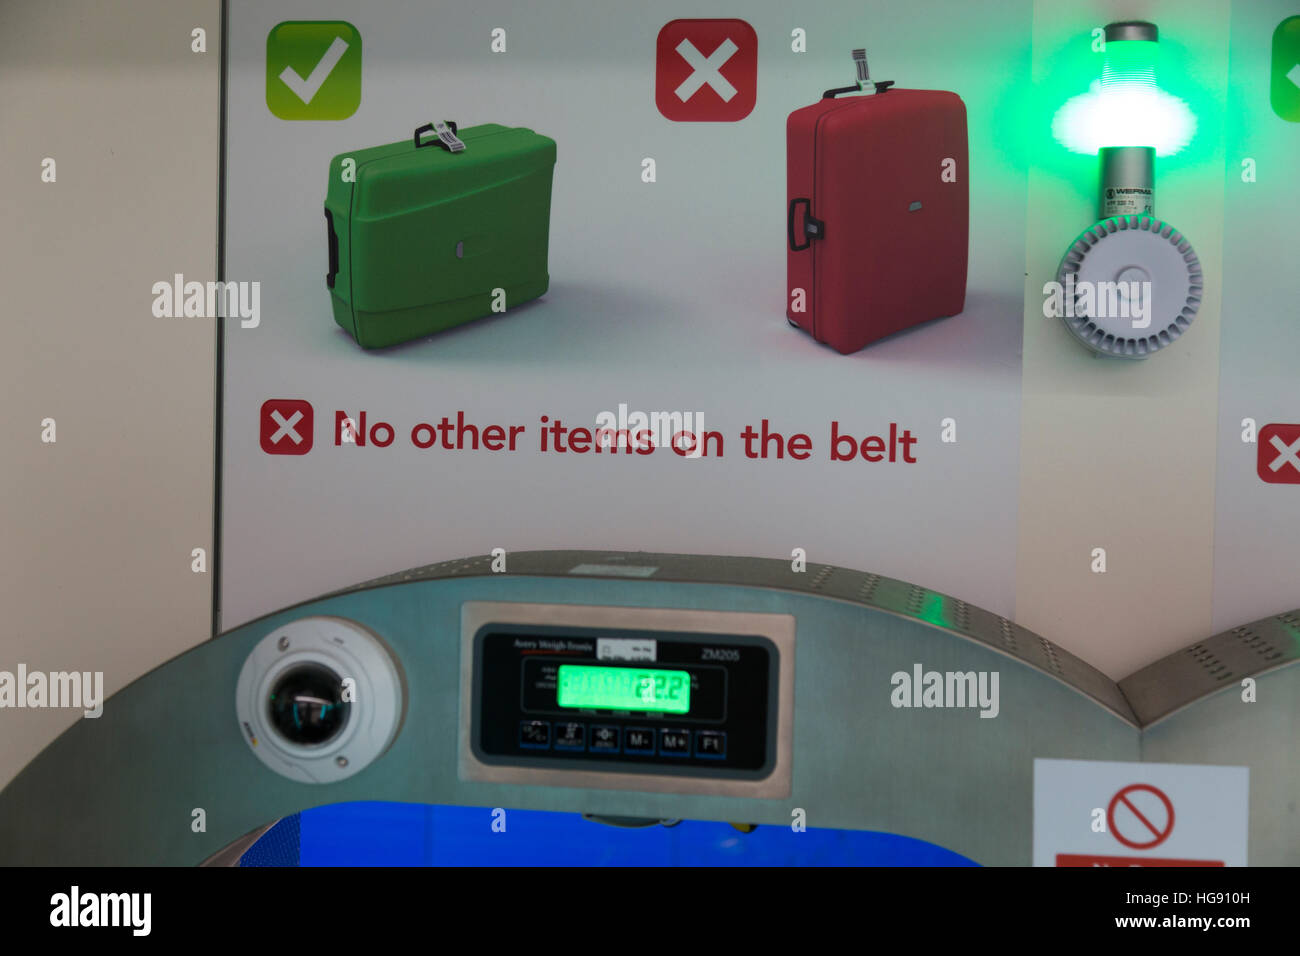 Airport check in KG weighing scale / scales display to weigh passenger bags baggage / luggage weight checked into - Stock Image